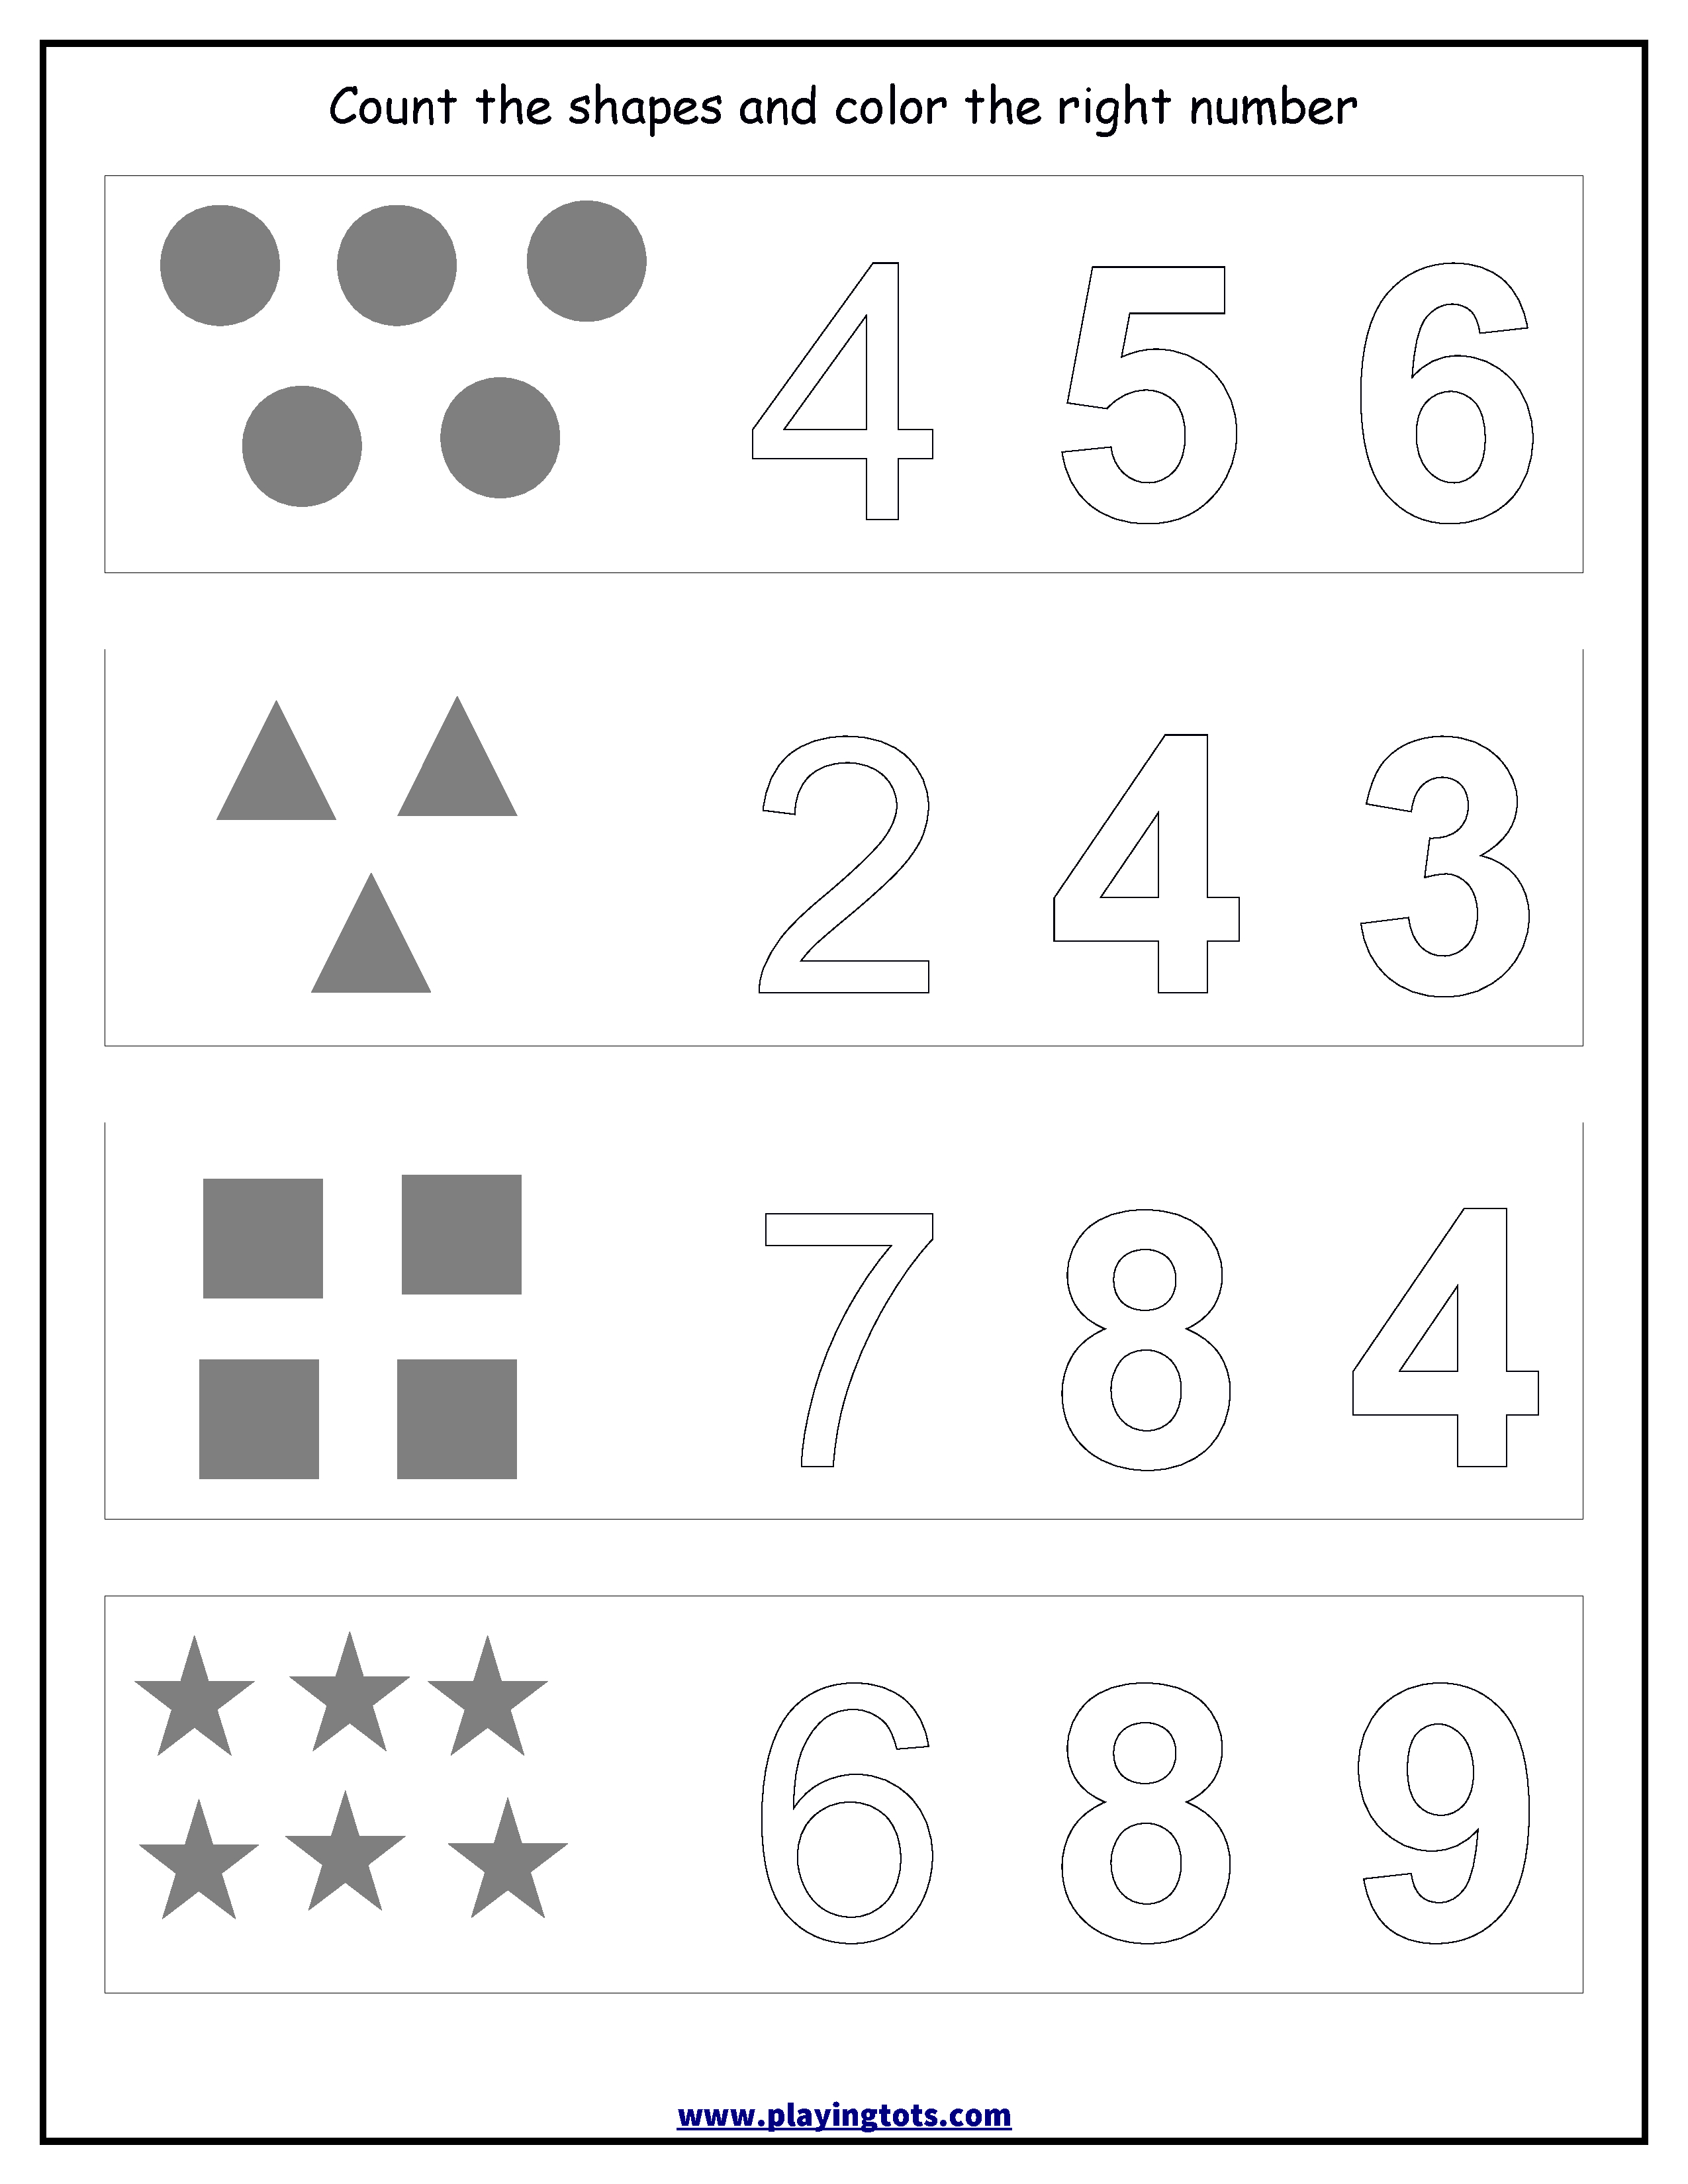 Worksheet - Counting Shapes,coloring Numbers Keywords:free | Printable Preschool Worksheets Pdf